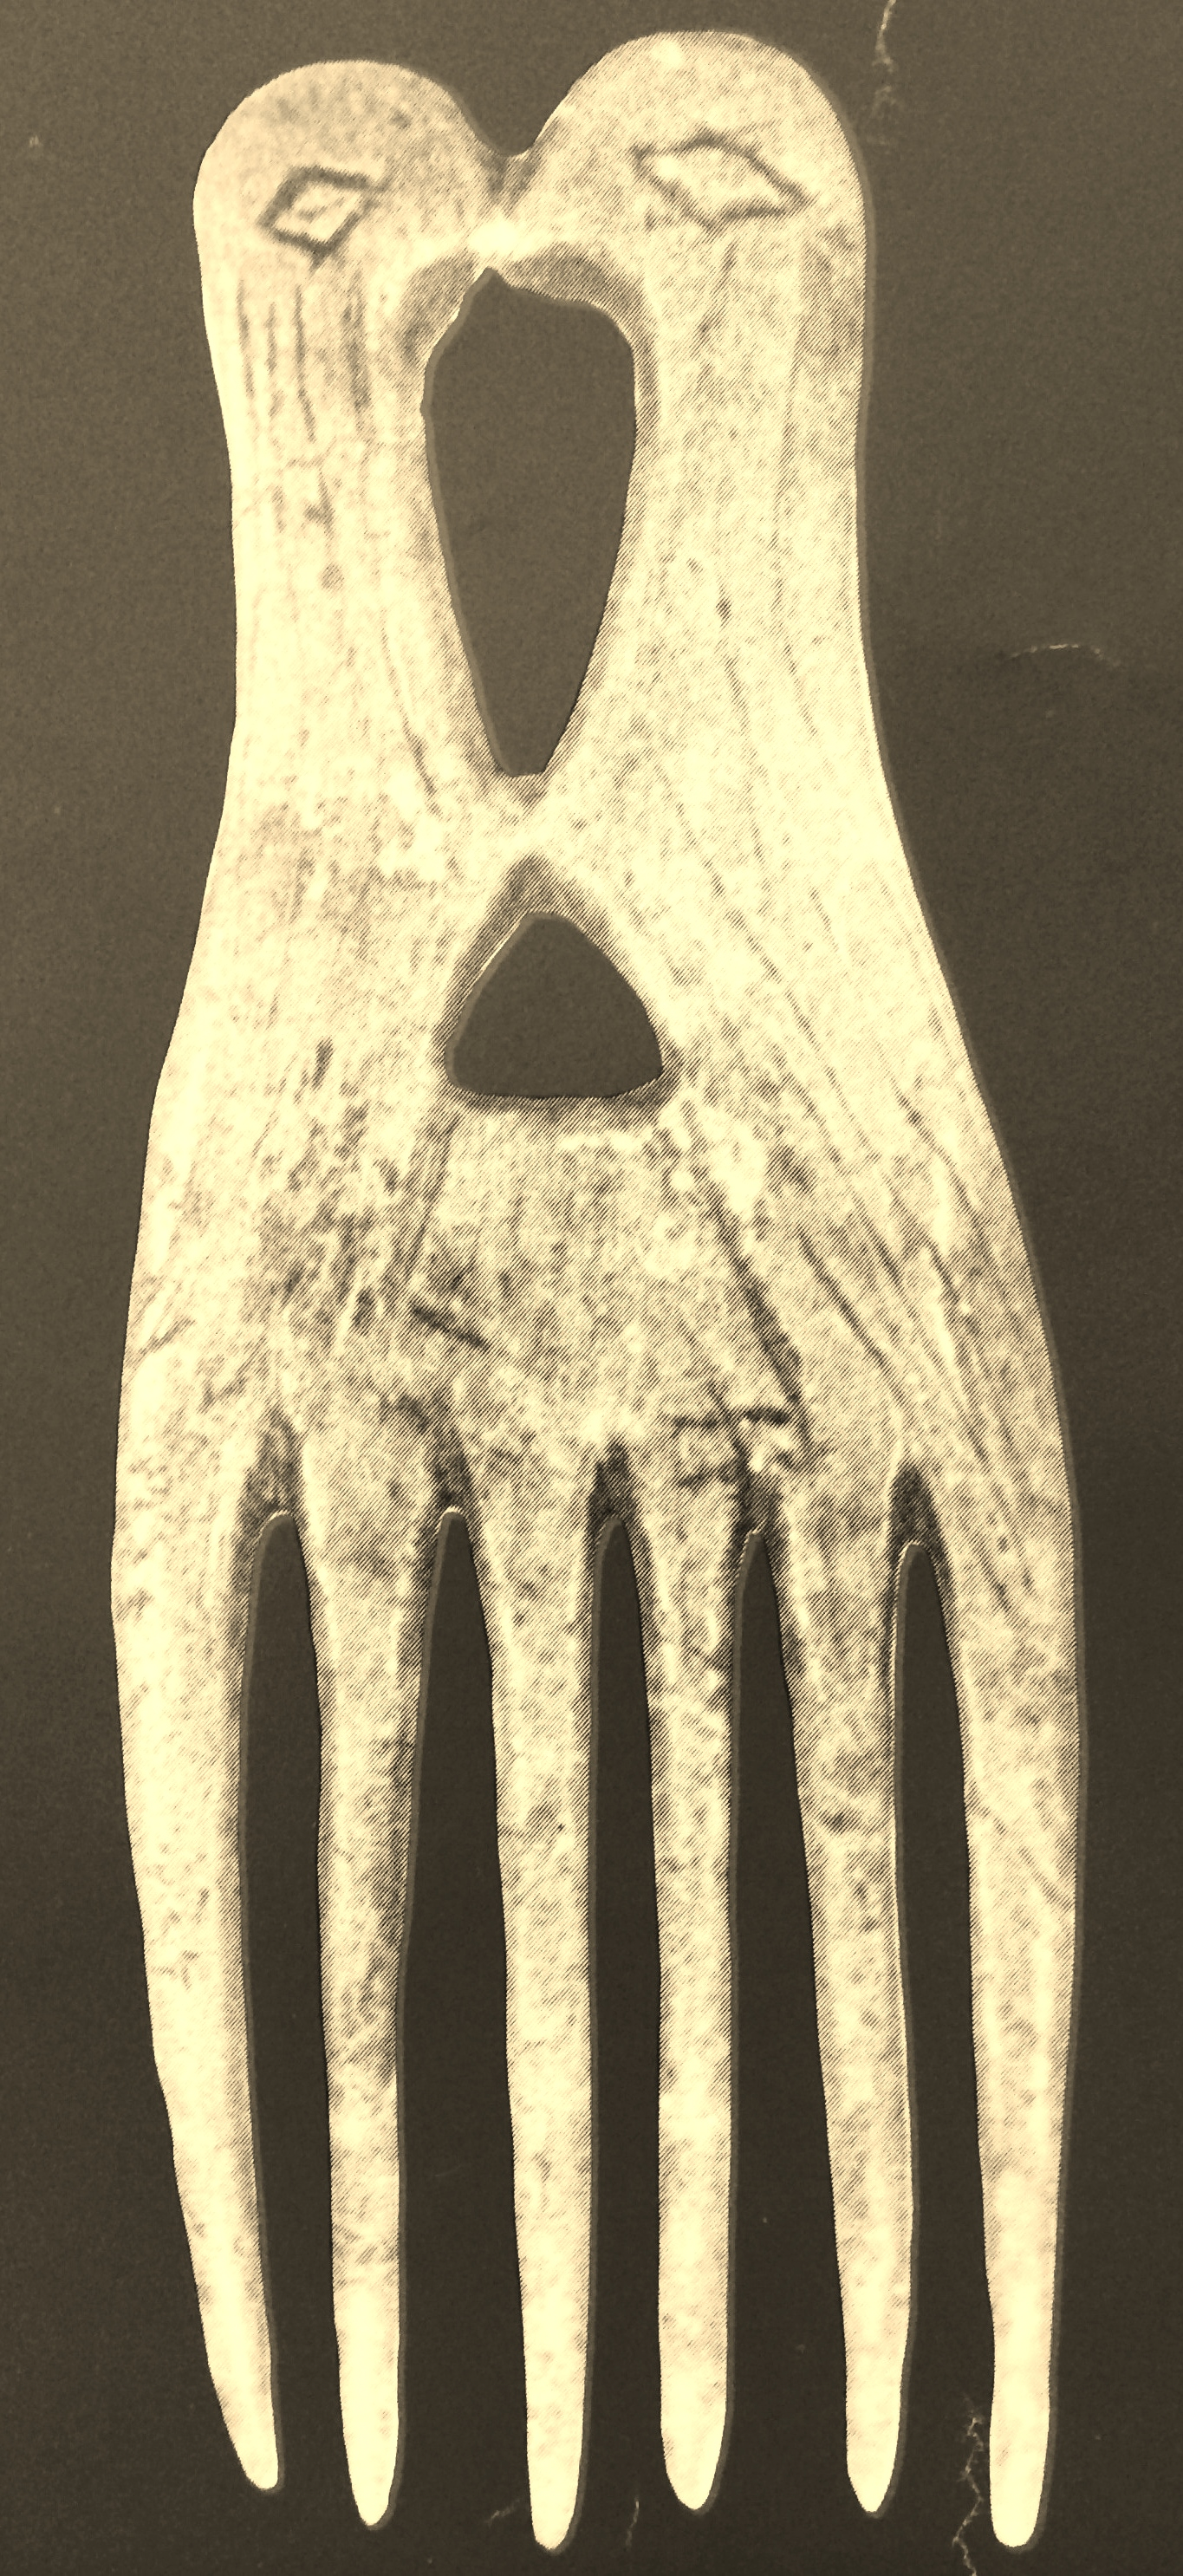 Bone comb from Frontenac Island illustrated in Ritchie's Archaeology of New York State (Source: 1993 New York State Archaeology Week poster).